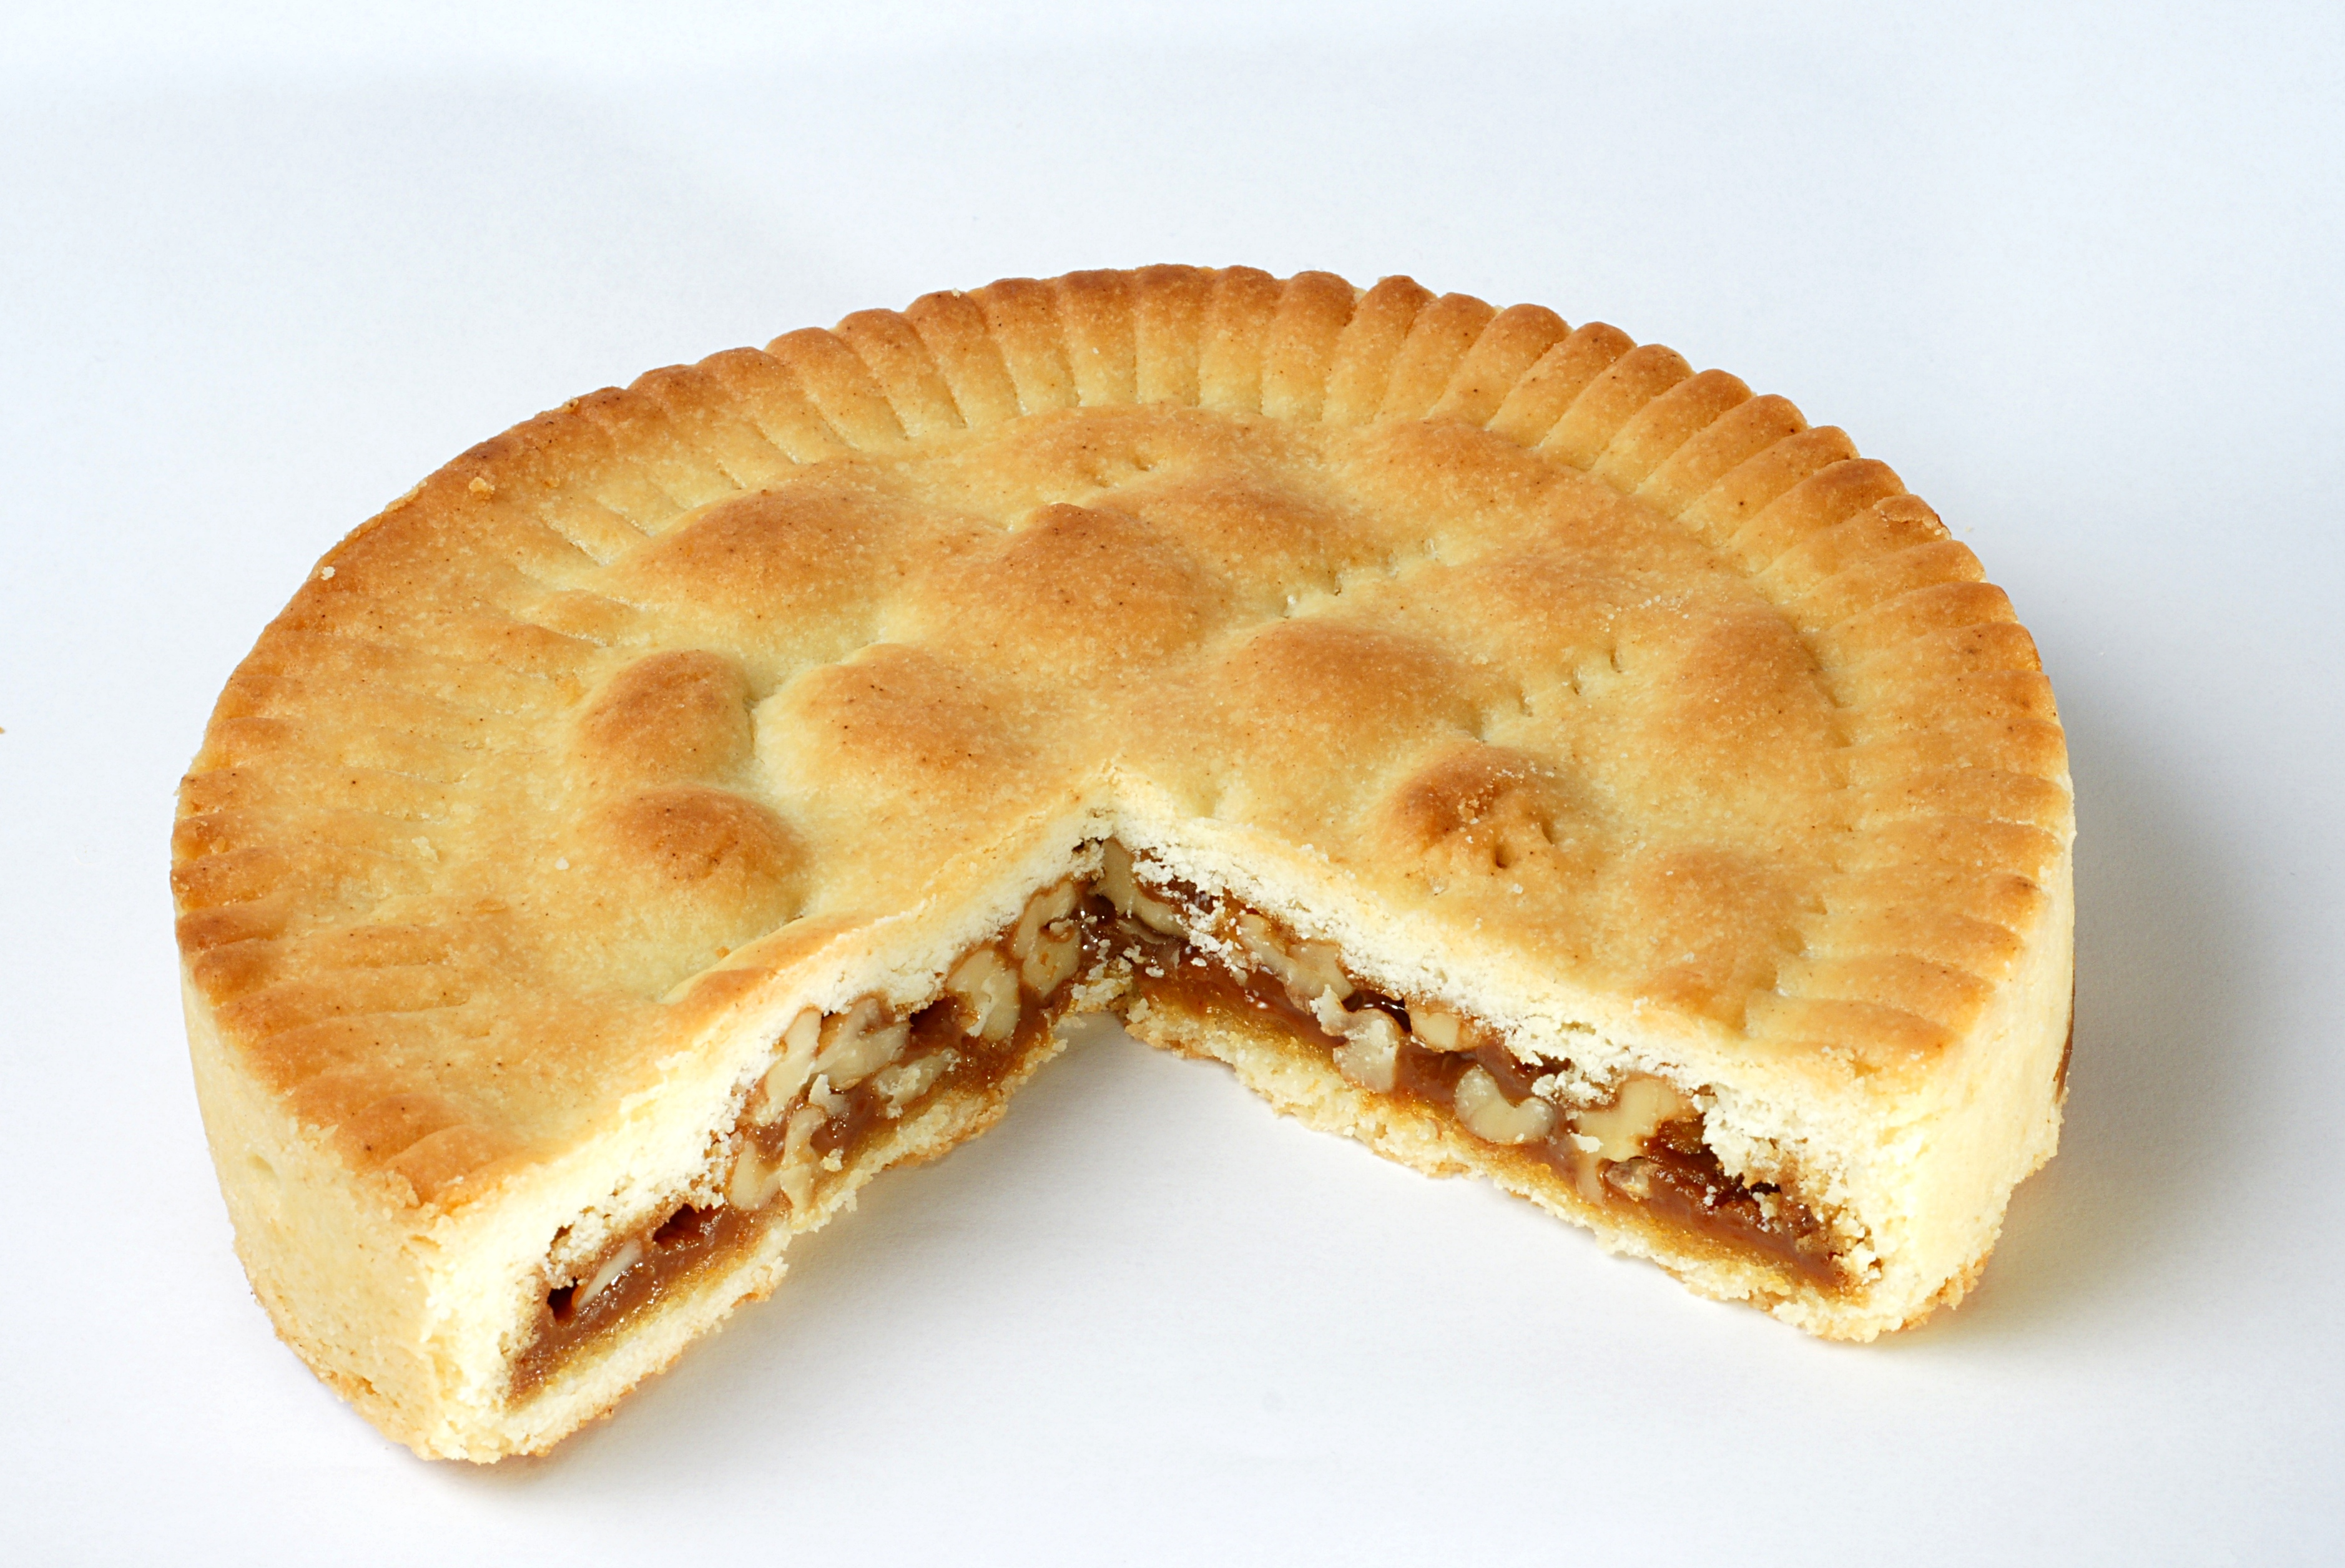 pastry filled with delicious filling